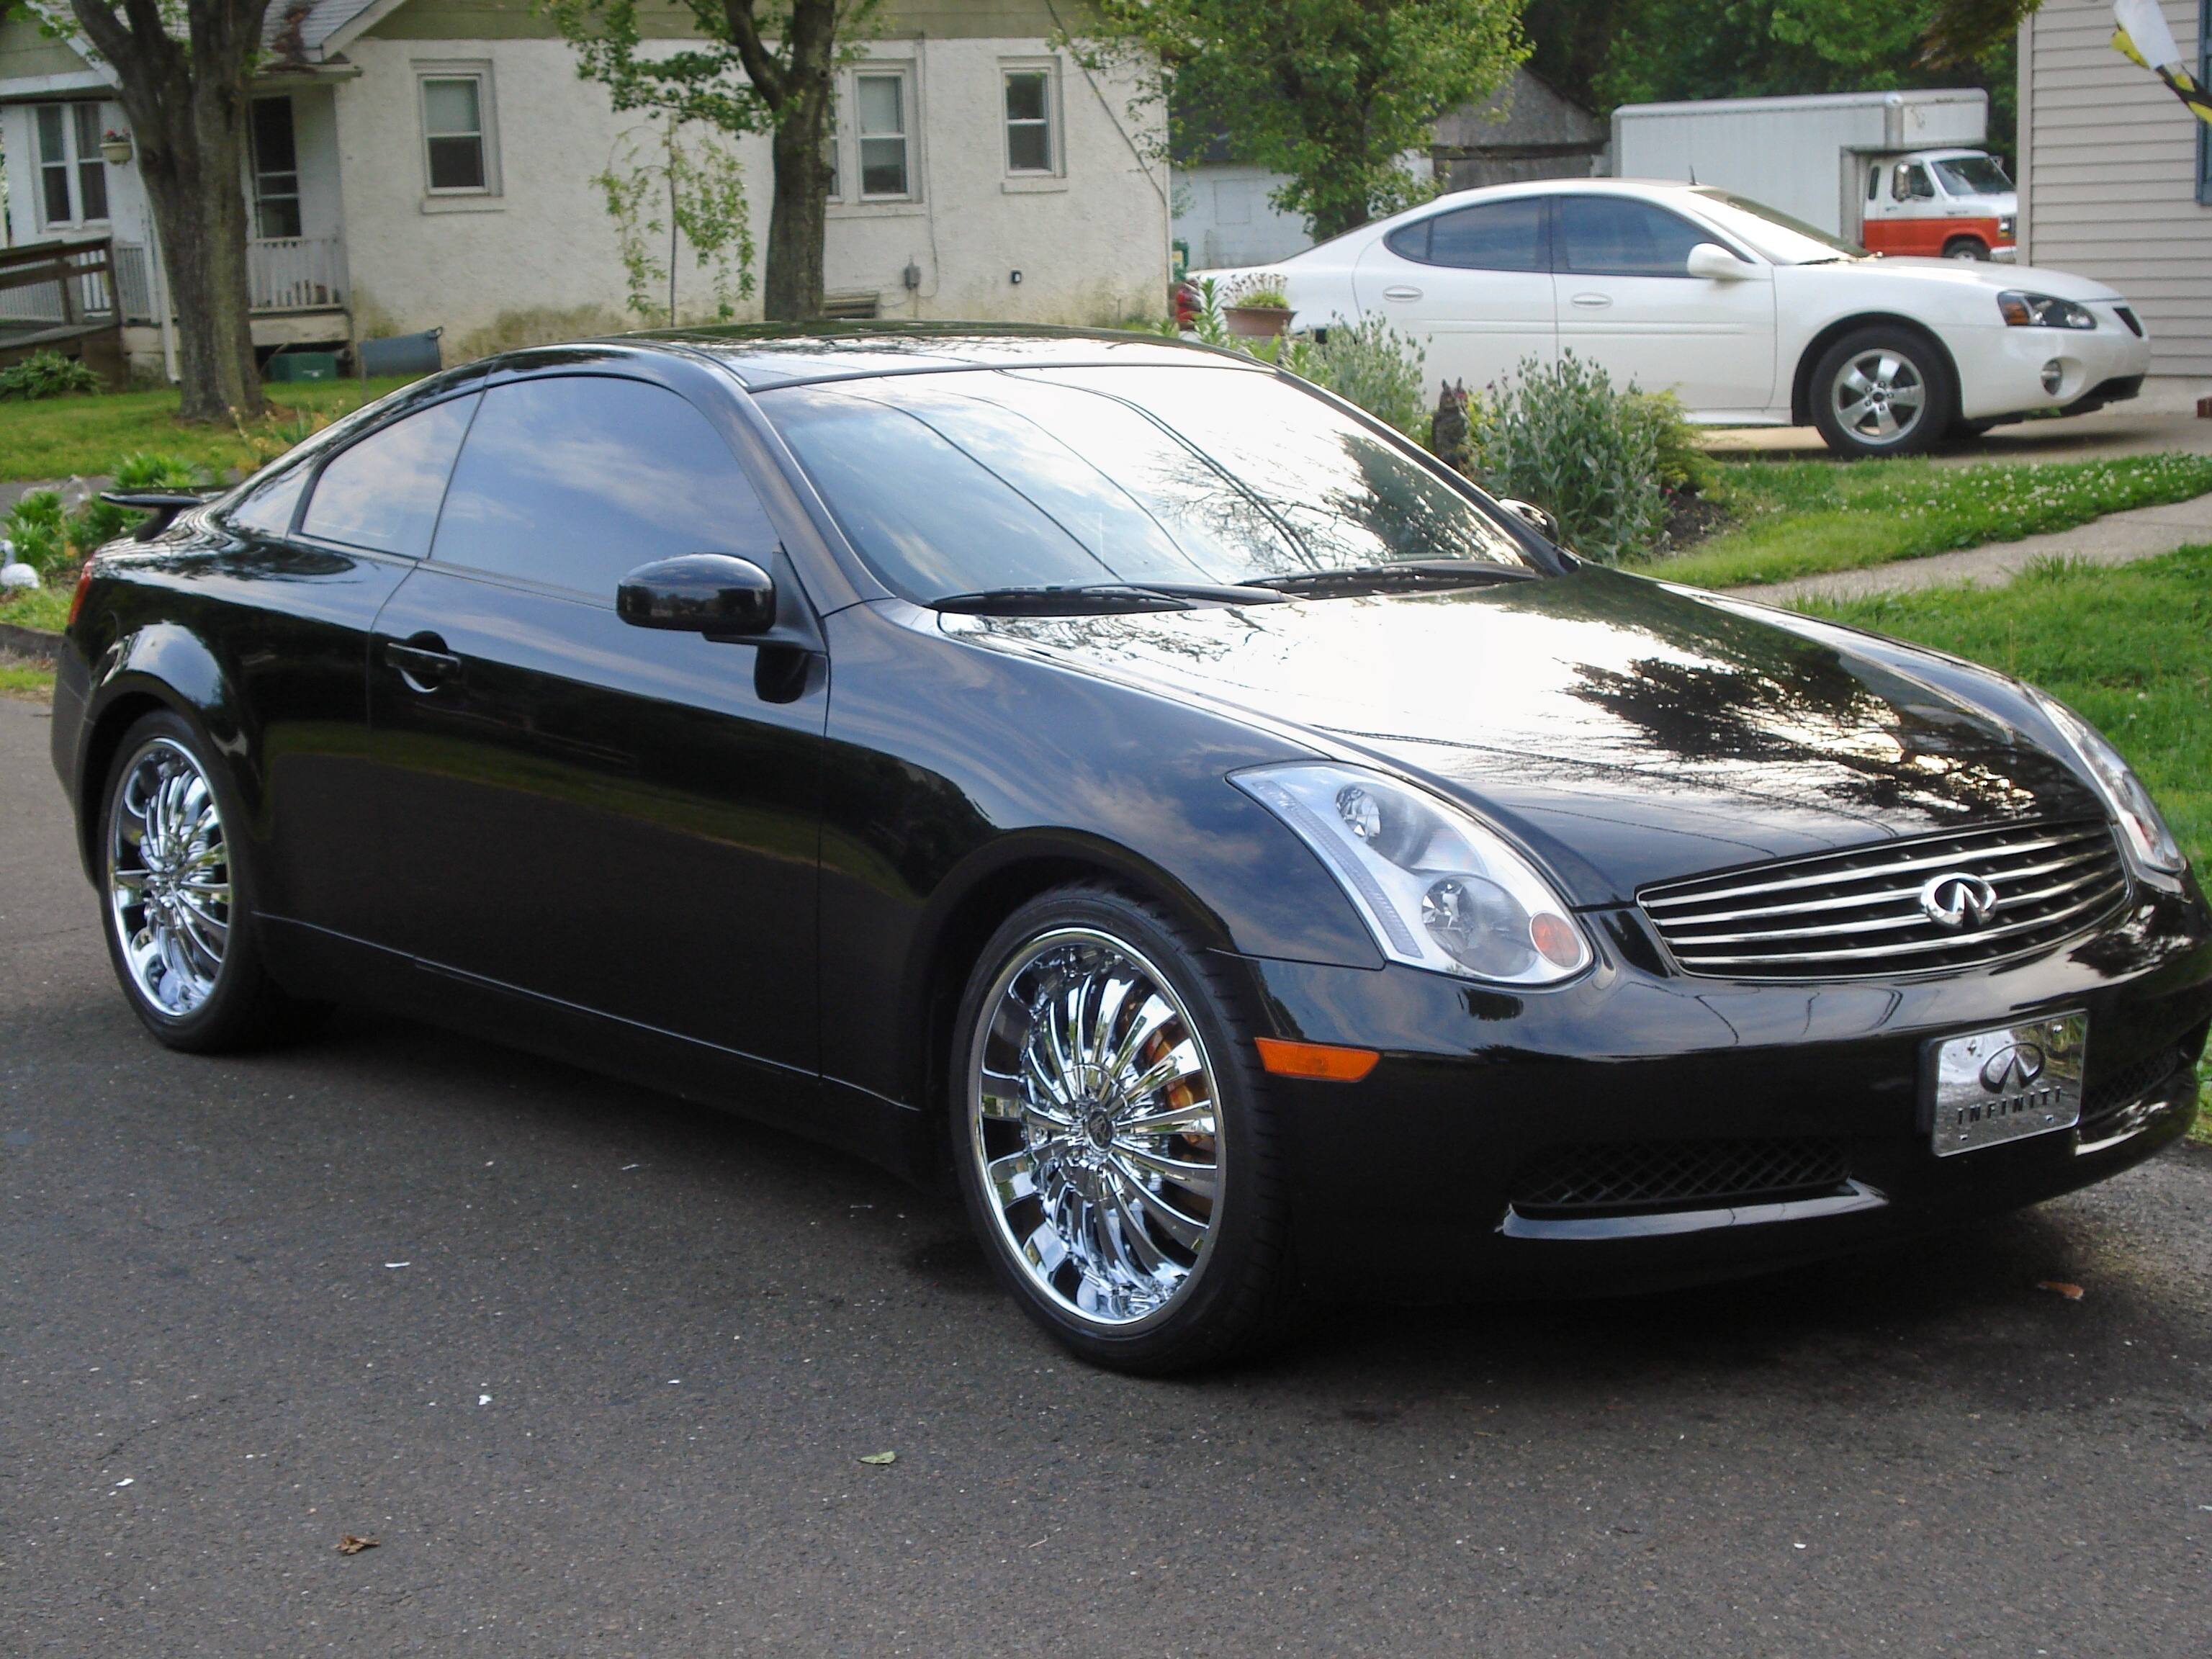 Bose Car Speakers >> G35-Black-Coupe 2003 Infiniti G Specs, Photos ...